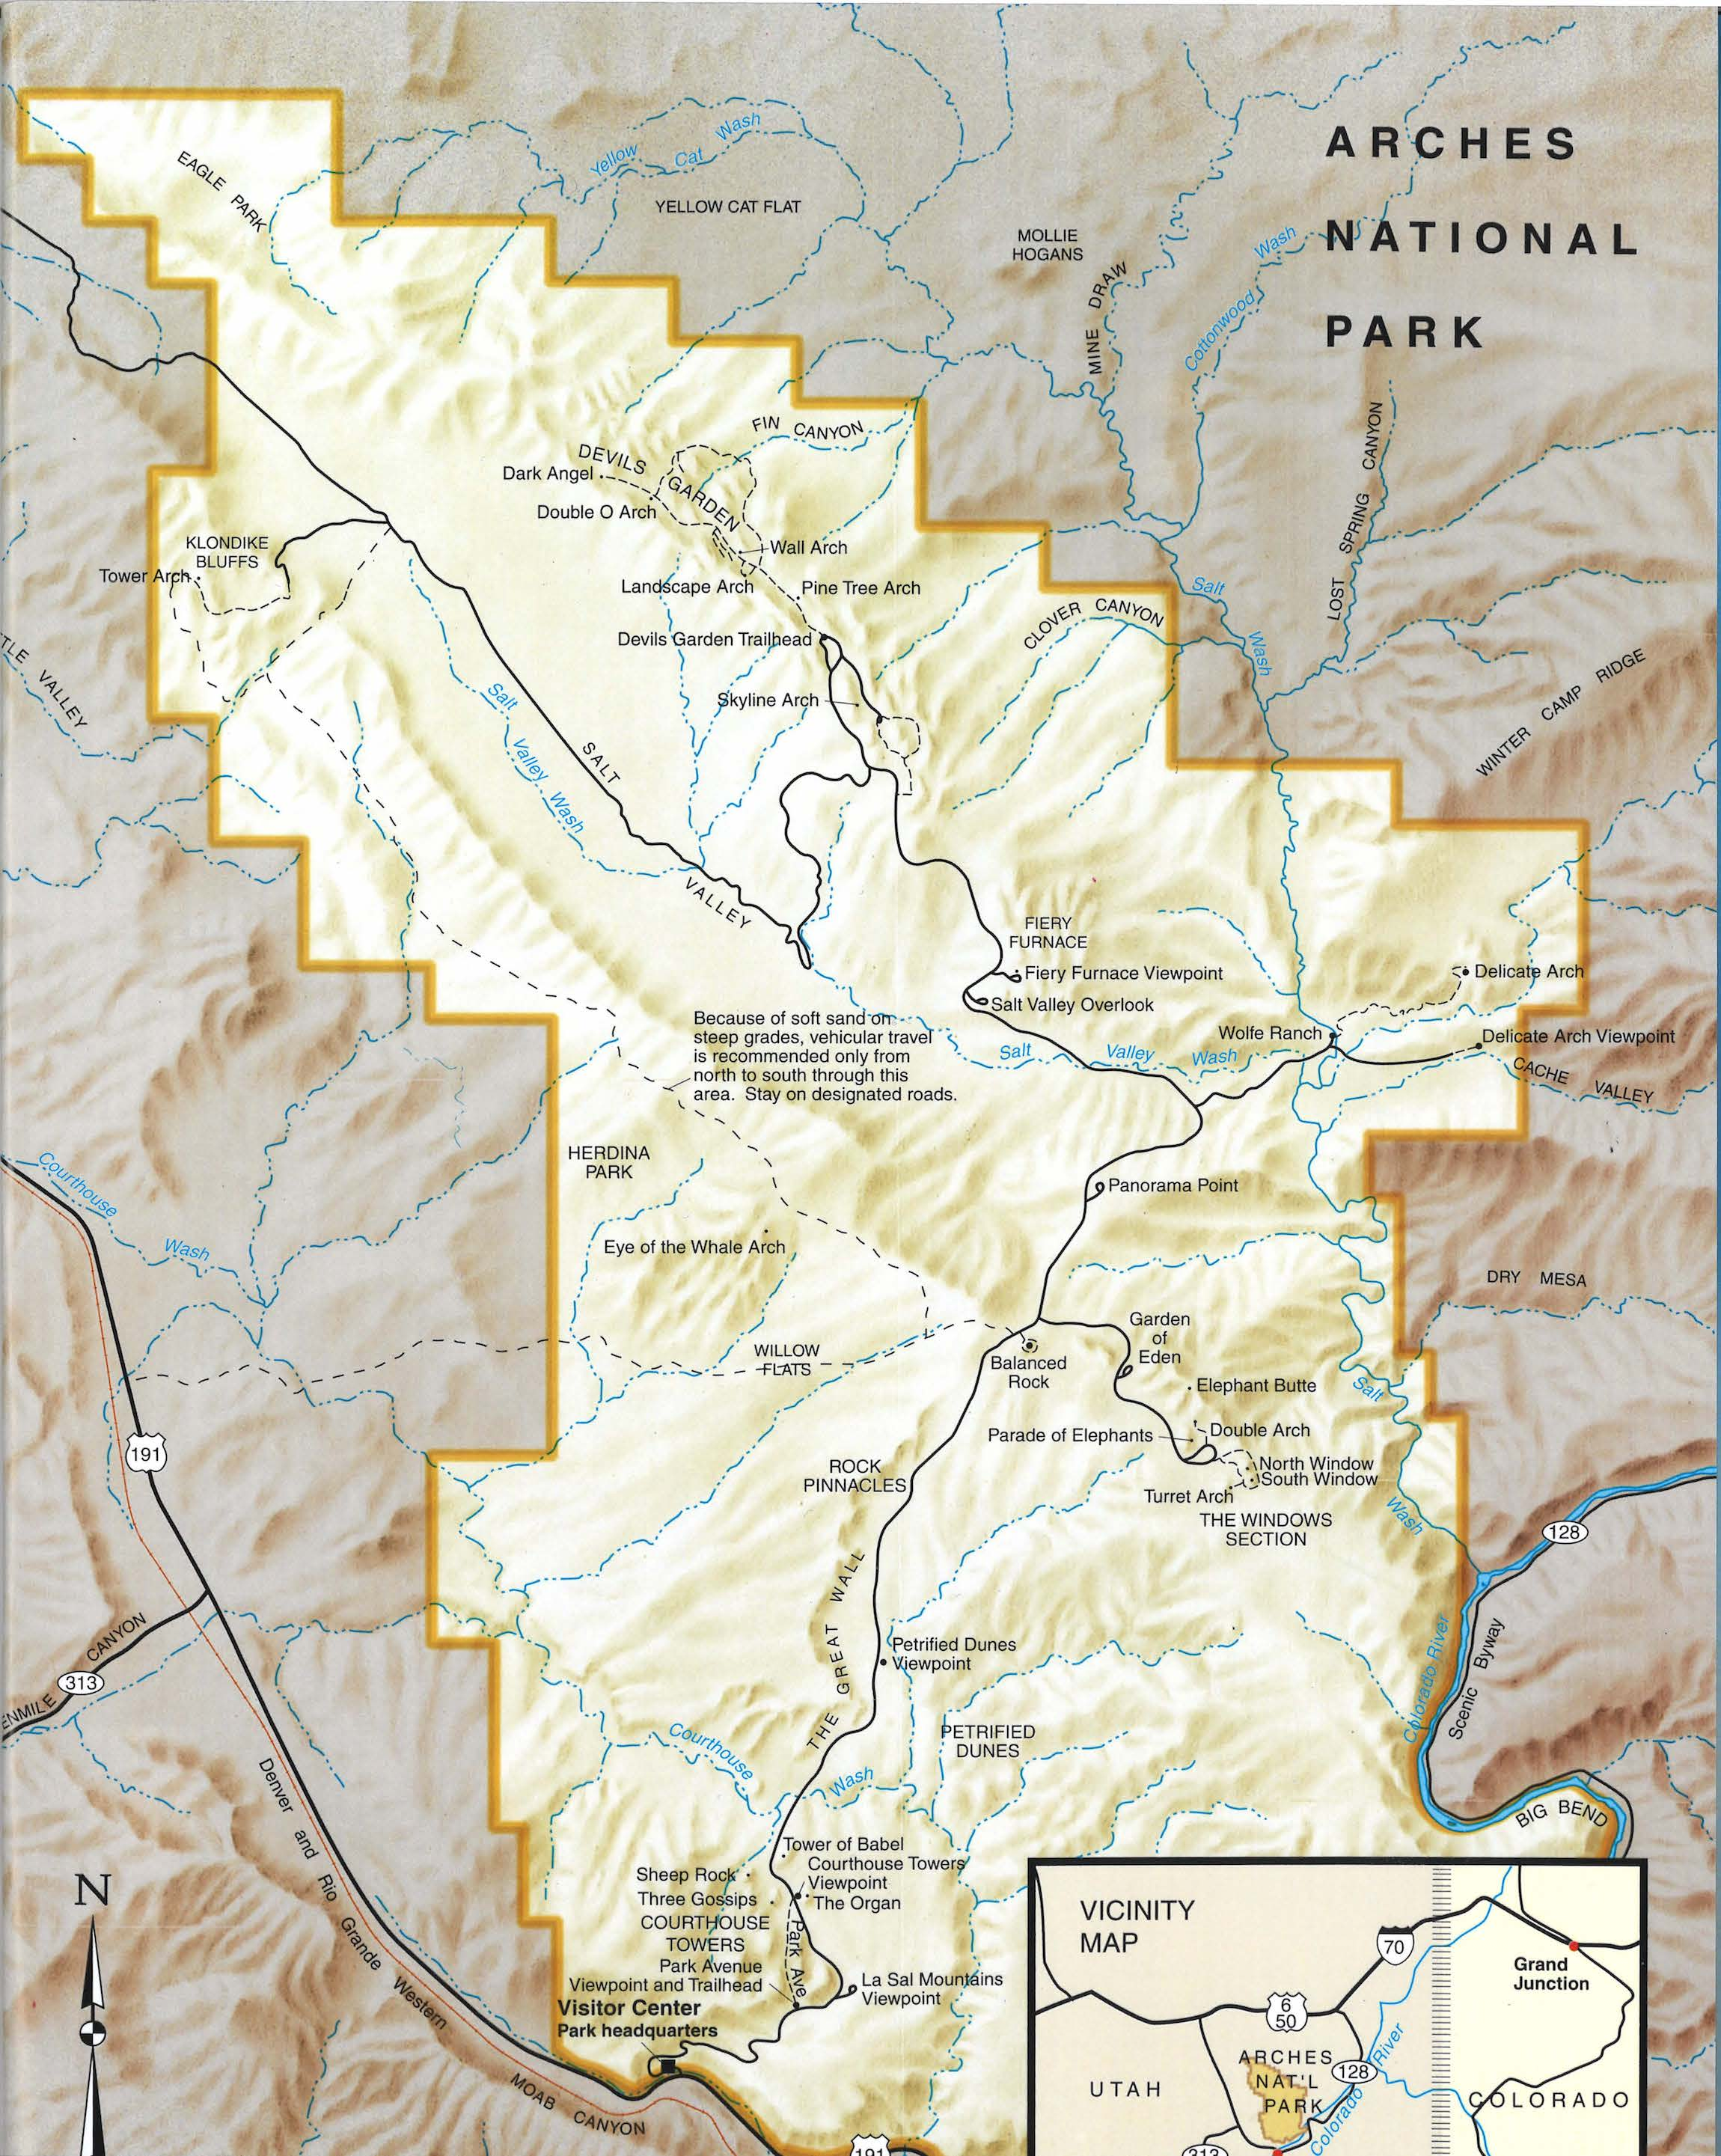 Moab UT: Arches National Park - FAB Senior Travel Map Arches National Park on amistad national recreation area map, death valley map, chamizal national memorial map, zion national park trail map, redwood national and state parks map, denali national park and preserve map, city of rocks national reserve map, moab map, monument valley map, devils garden map, antelope canyon map, lake clark national park and preserve map, bering land bridge national preserve map, hawaii volcanoes national park map, grand canyon map, canyonlands national park road map, arizona map, bryce canyon map, sequoia national park map, national park of american samoa map,